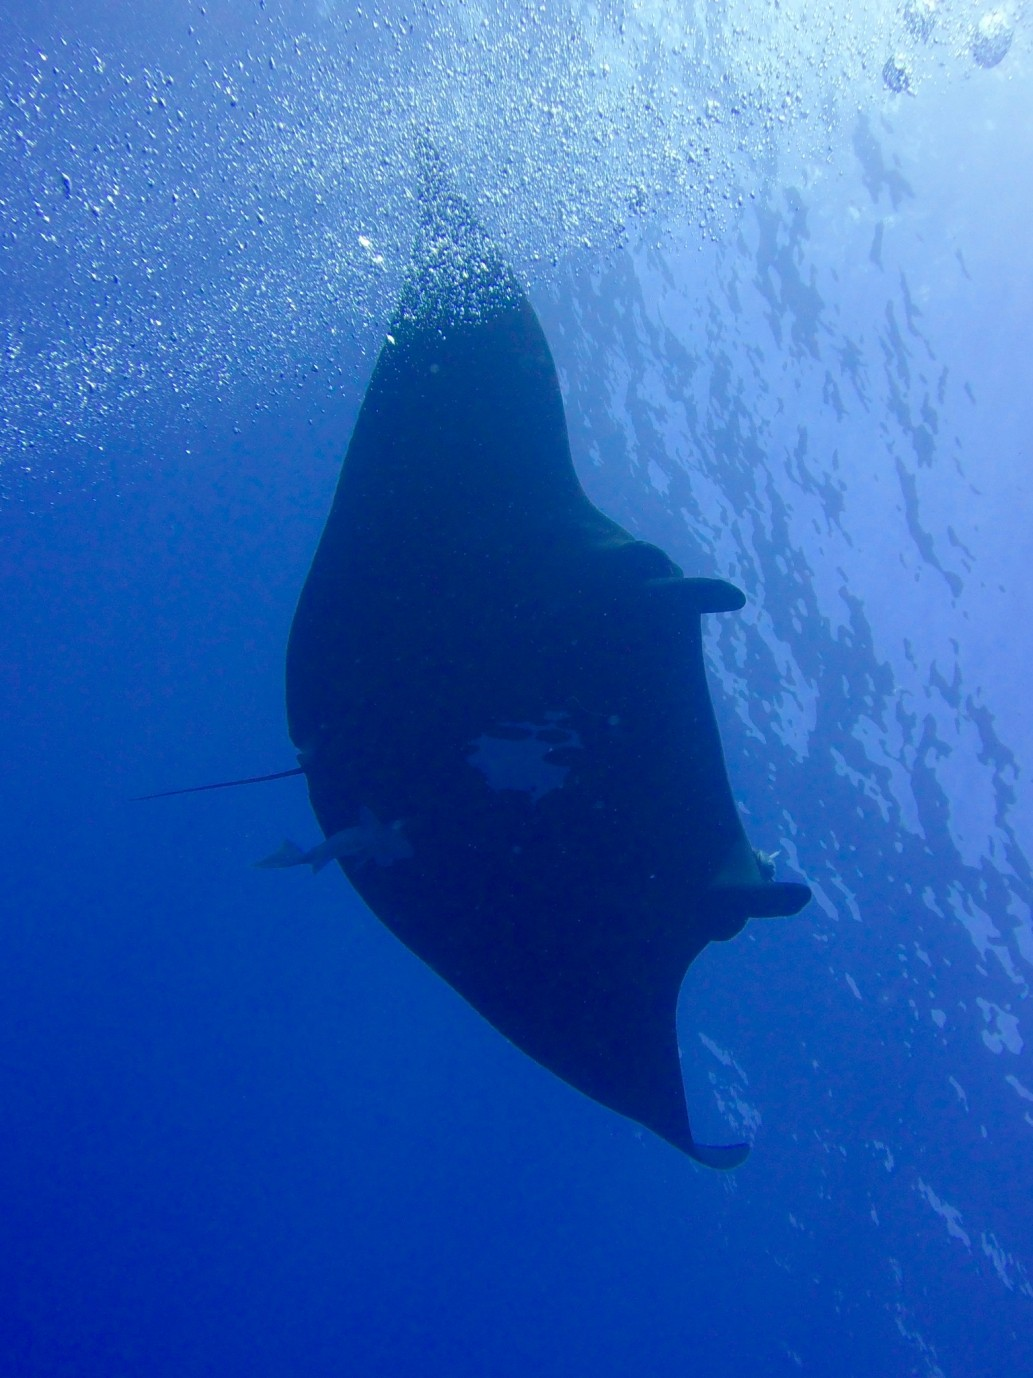 black manta ray from below, swimming by regulator bubbles